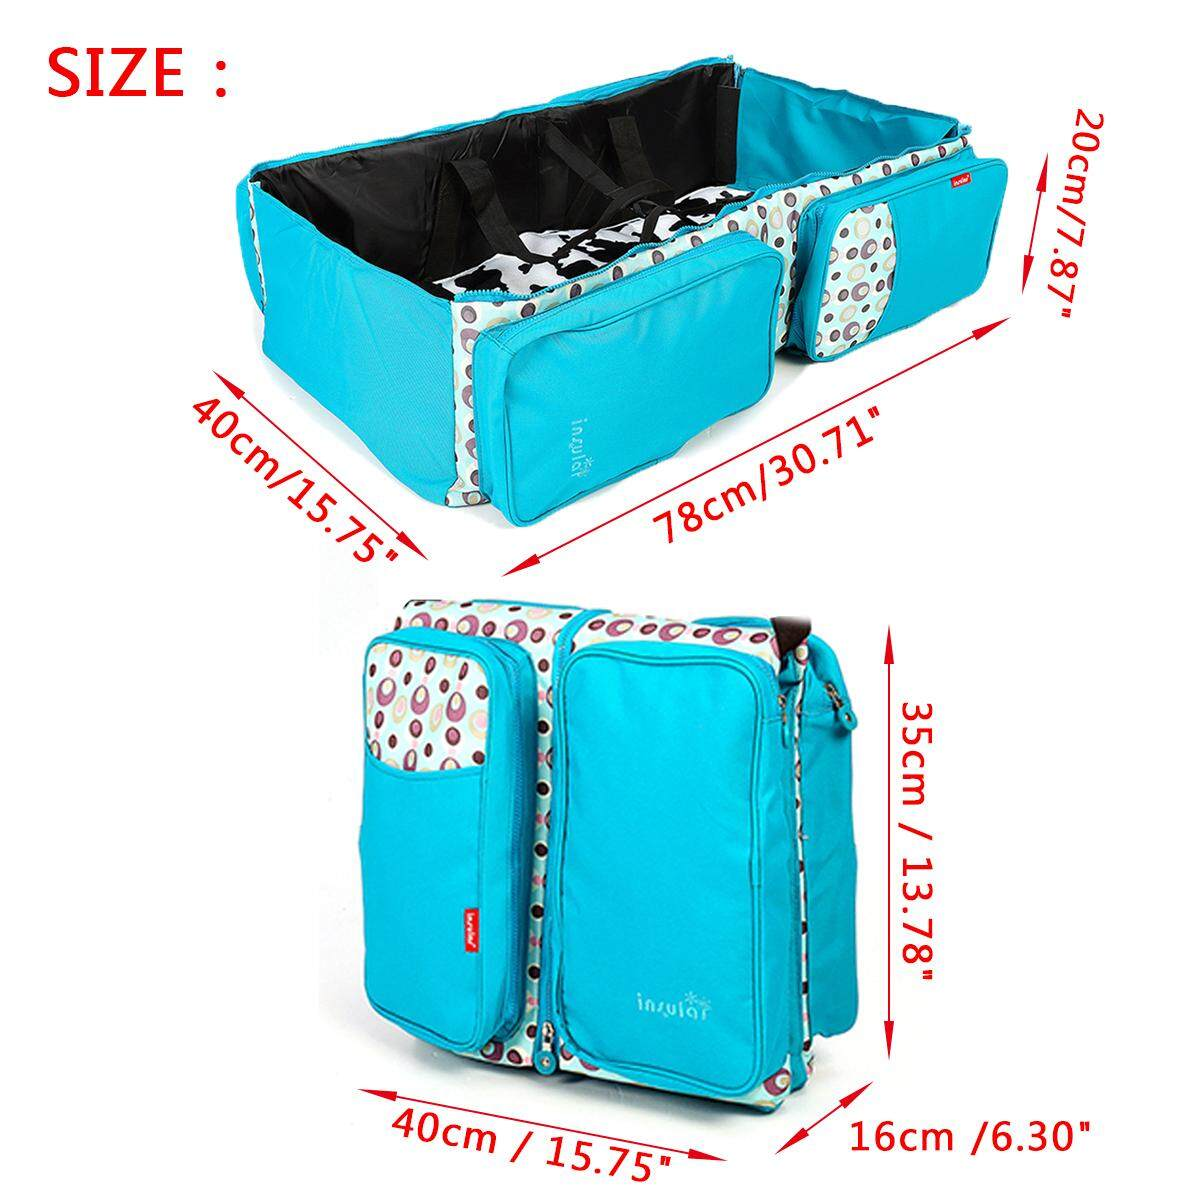 3 In1 Multi-Function Baby Diaper Travel Bag Portable Cot Mummy Infant Fold Bed By Audew.